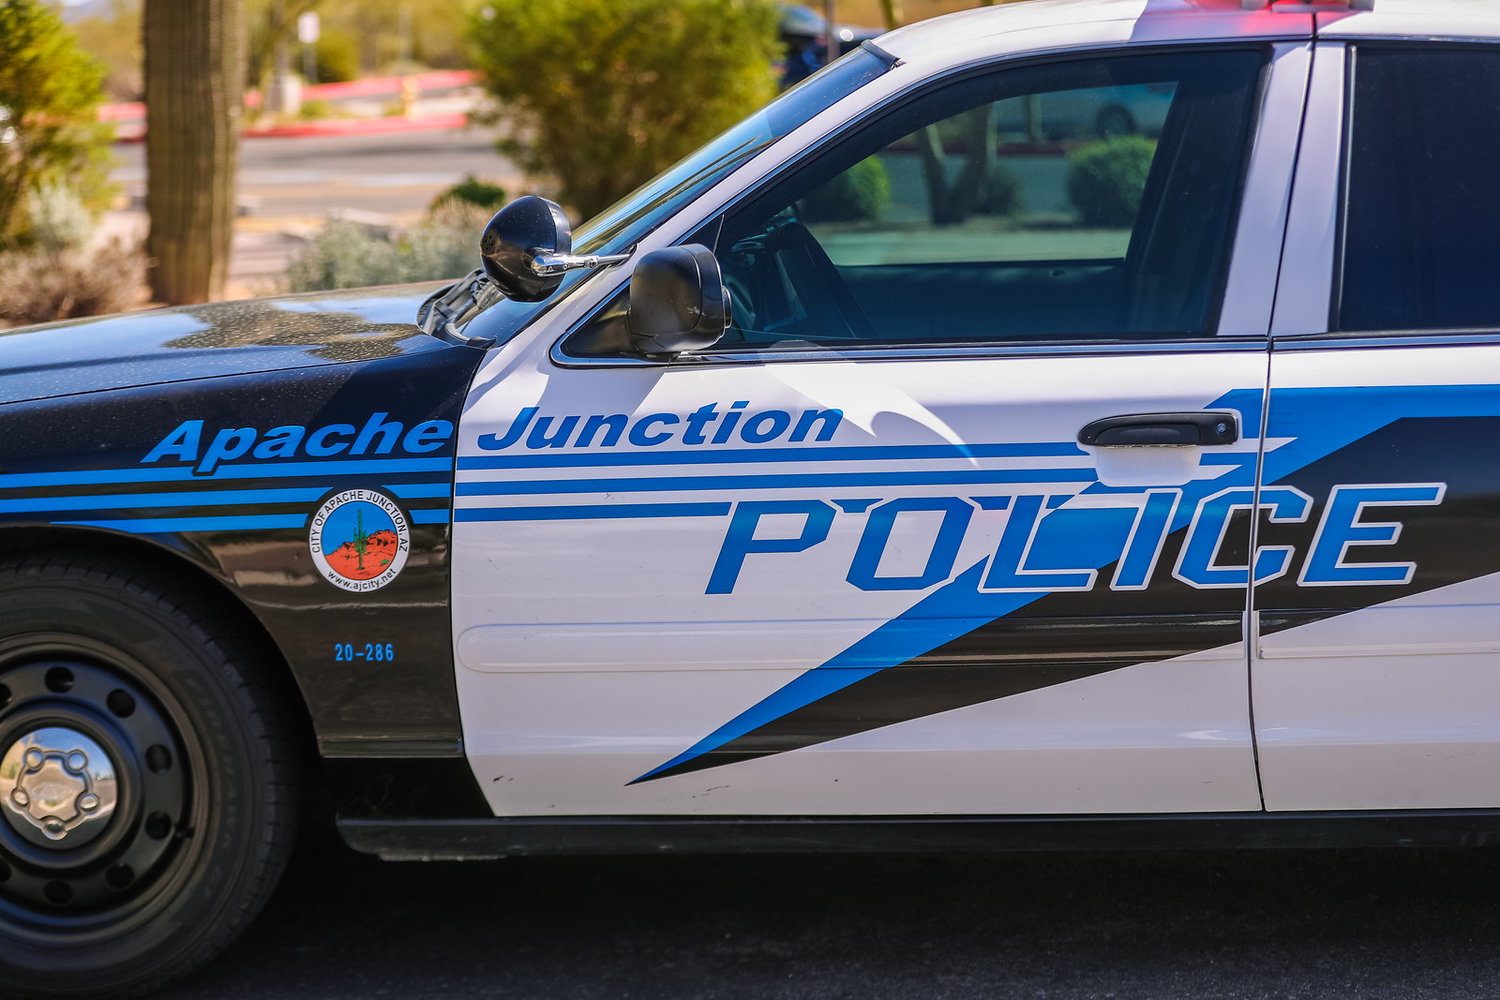 Apache Junction police responded to incidents ranging from shoplifting to drug possession and criminal trespassing, Jan. 11-24.